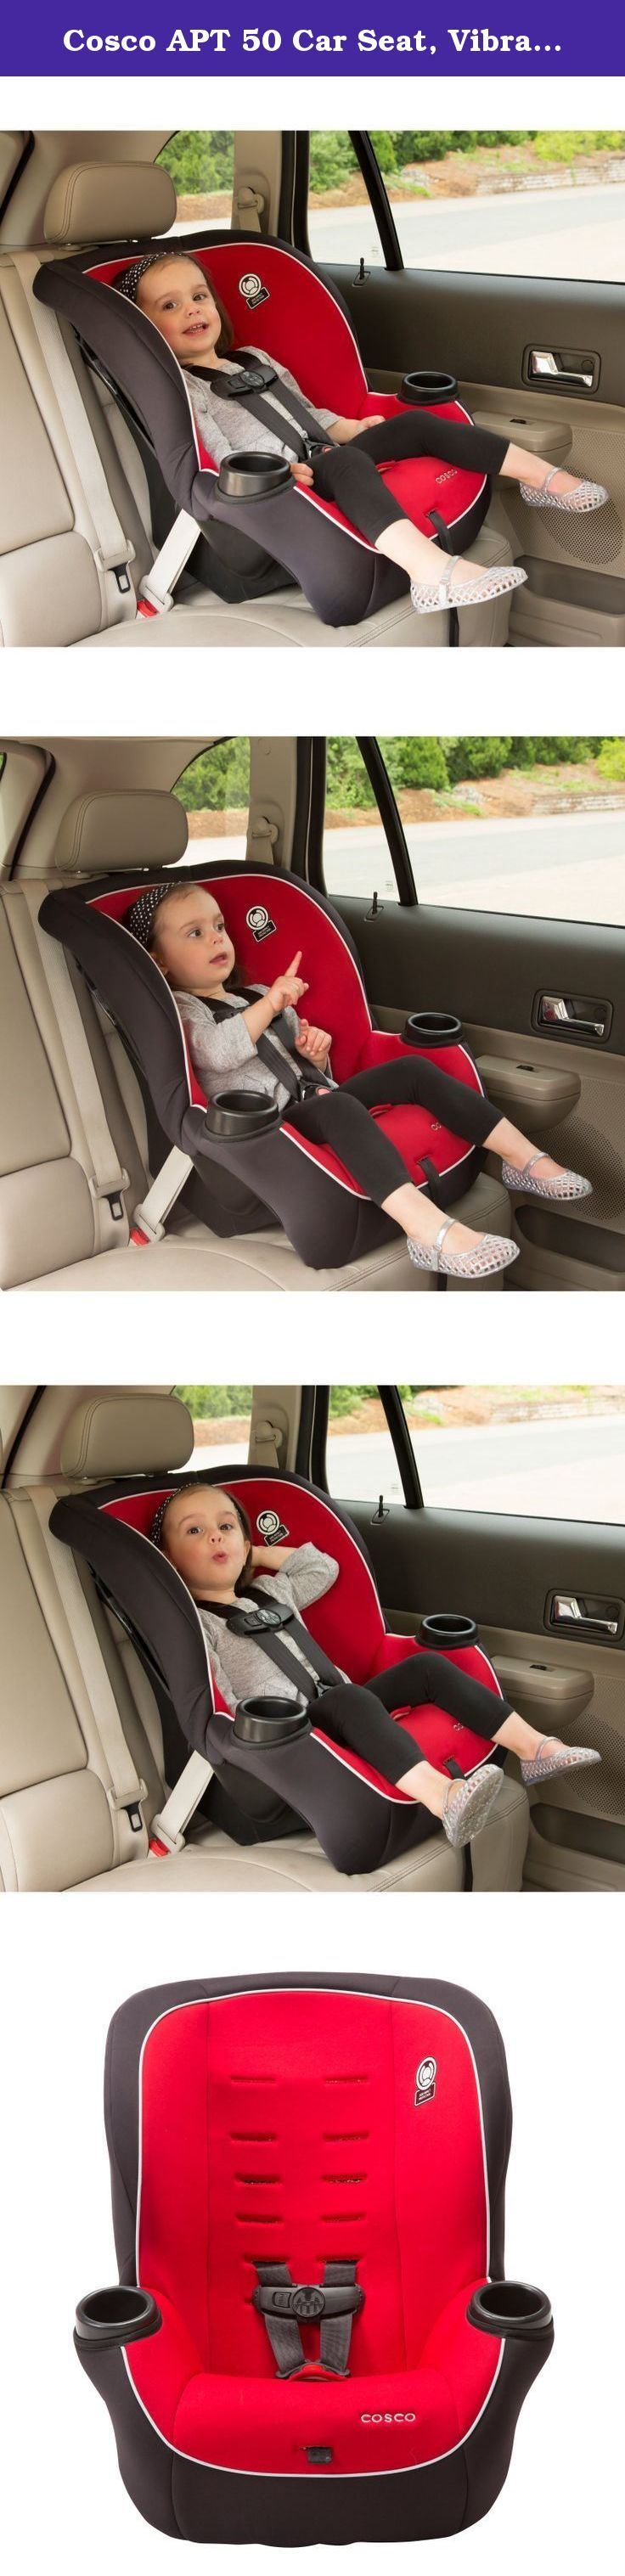 Captivating Cosco Apt 50 Car Seat Ideas - Best Image Engine - deci.us